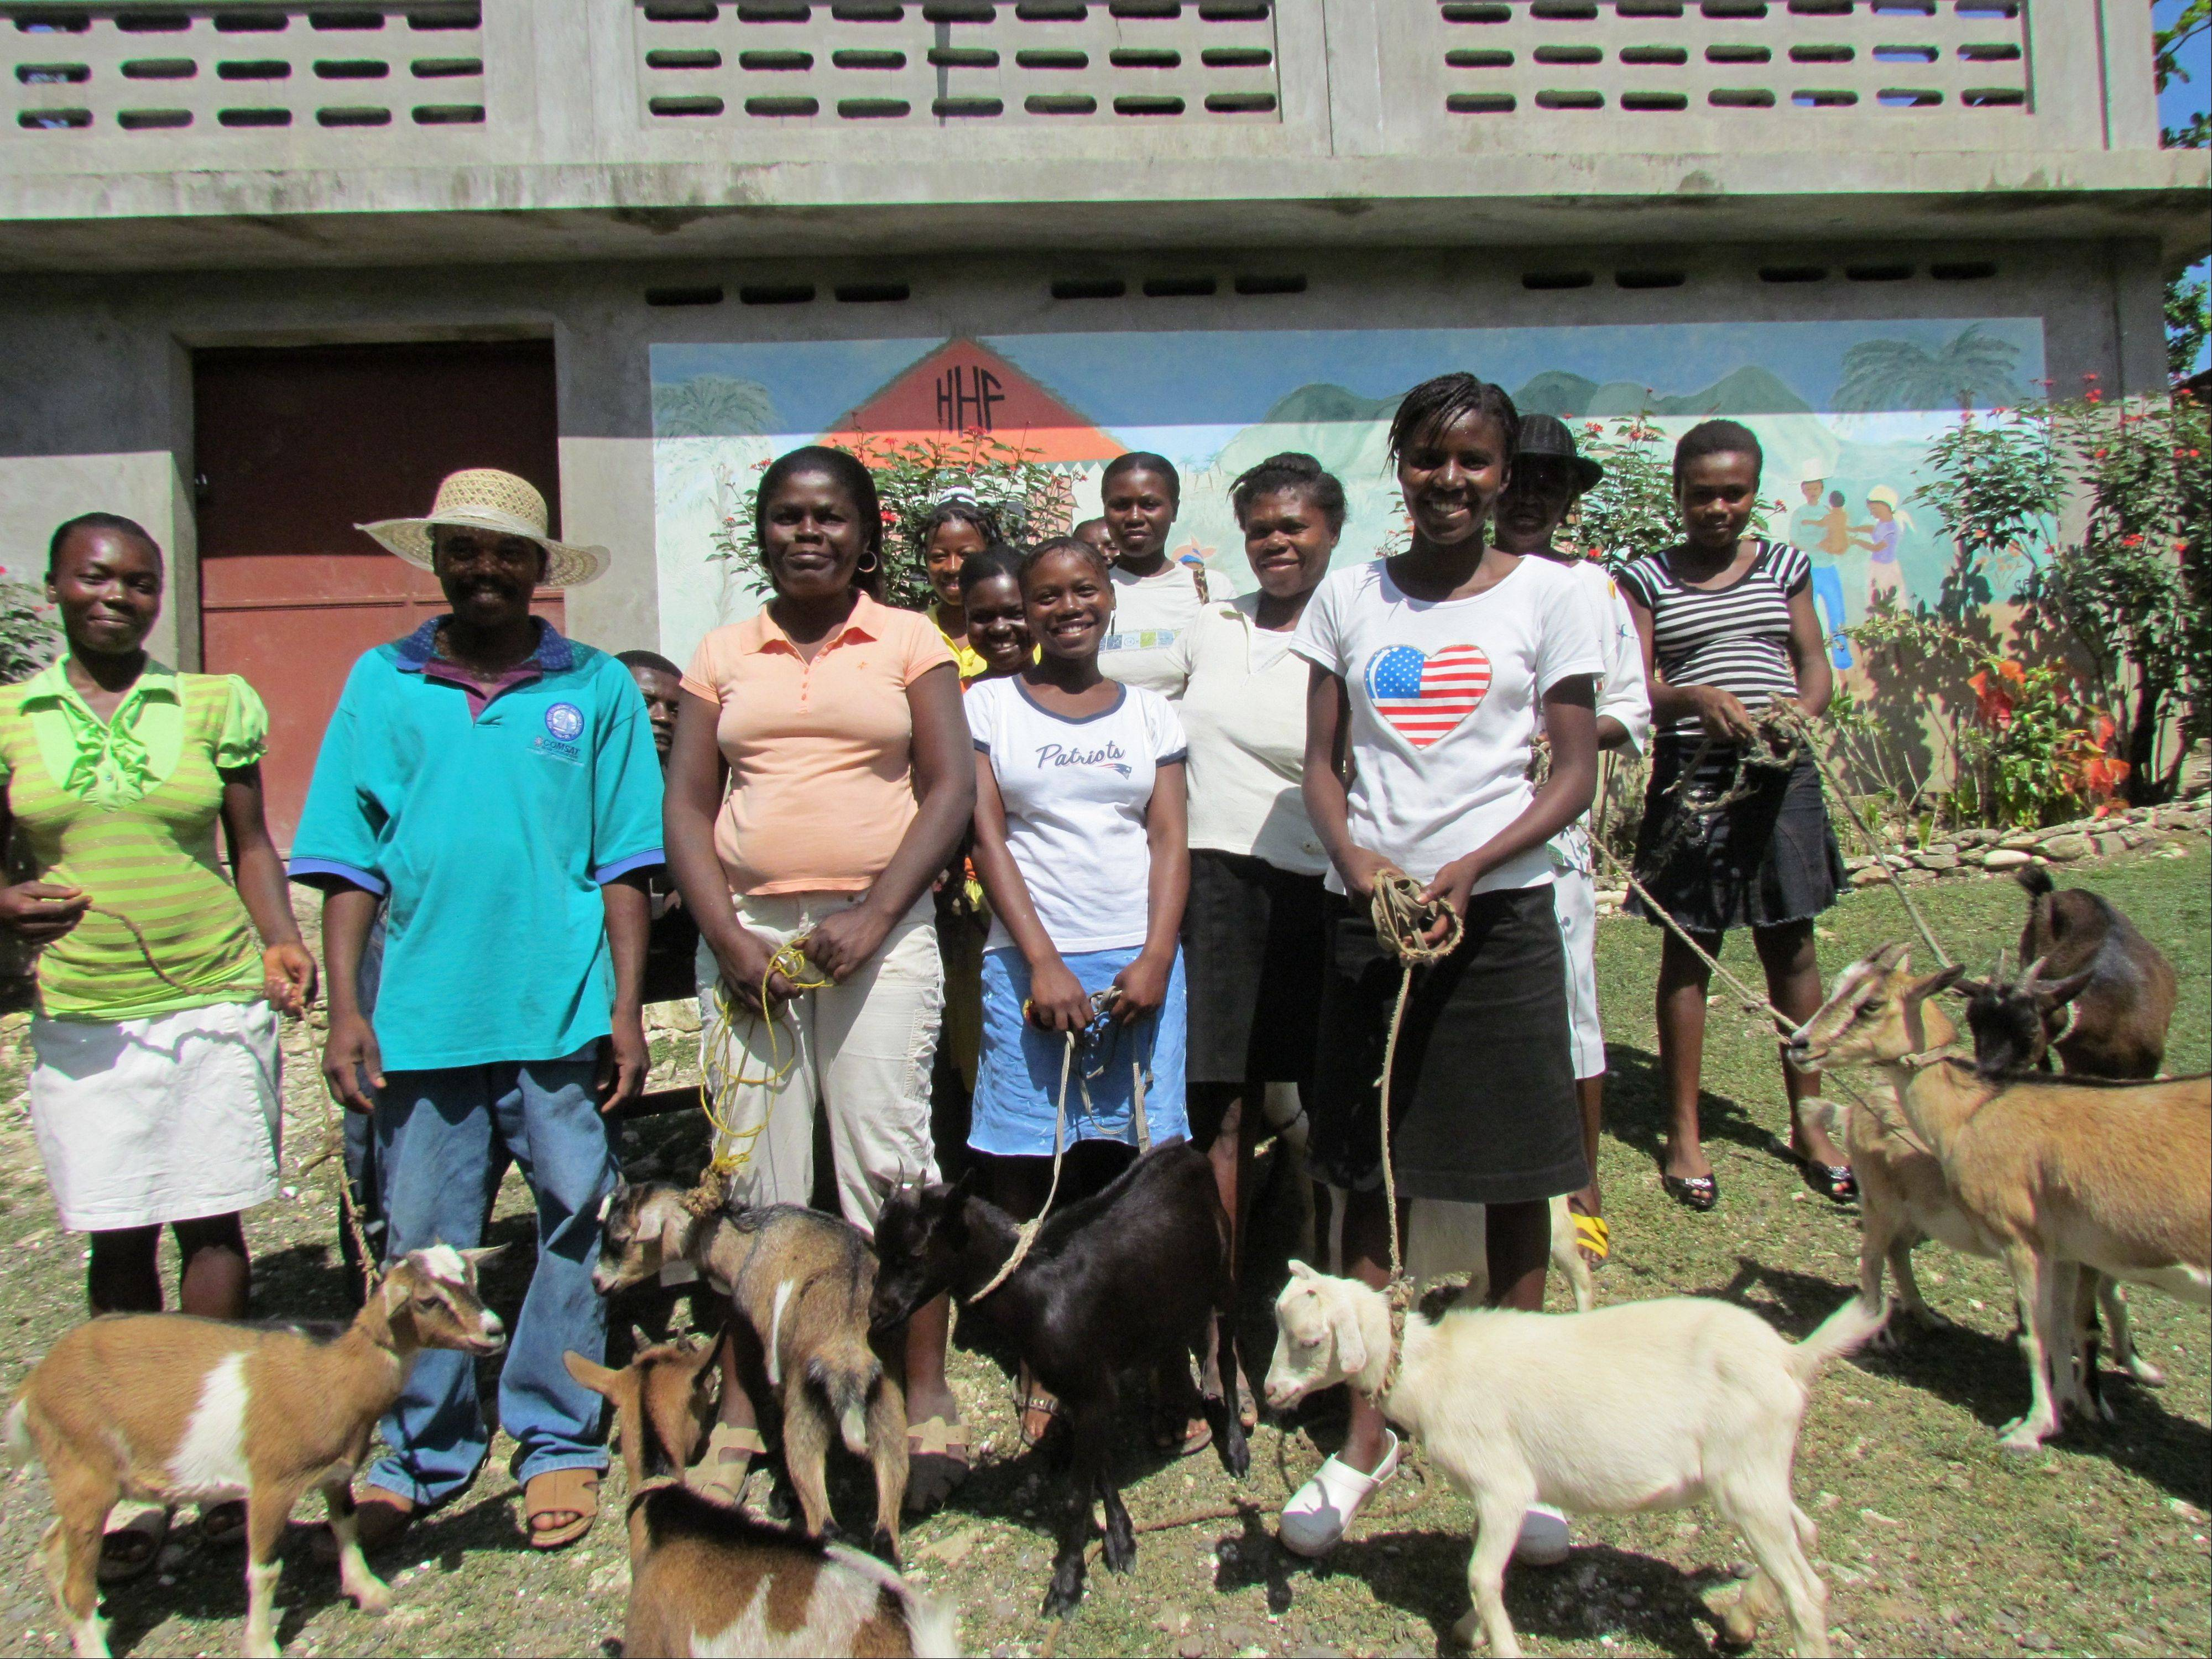 The average Haitian makes only between $90 and $300 a year. Without the Give a Goat program, villagers would never be able to afford a goat on their own, said Dr. Jeremiah Lowney, who founded the Haitian Health Foundation.